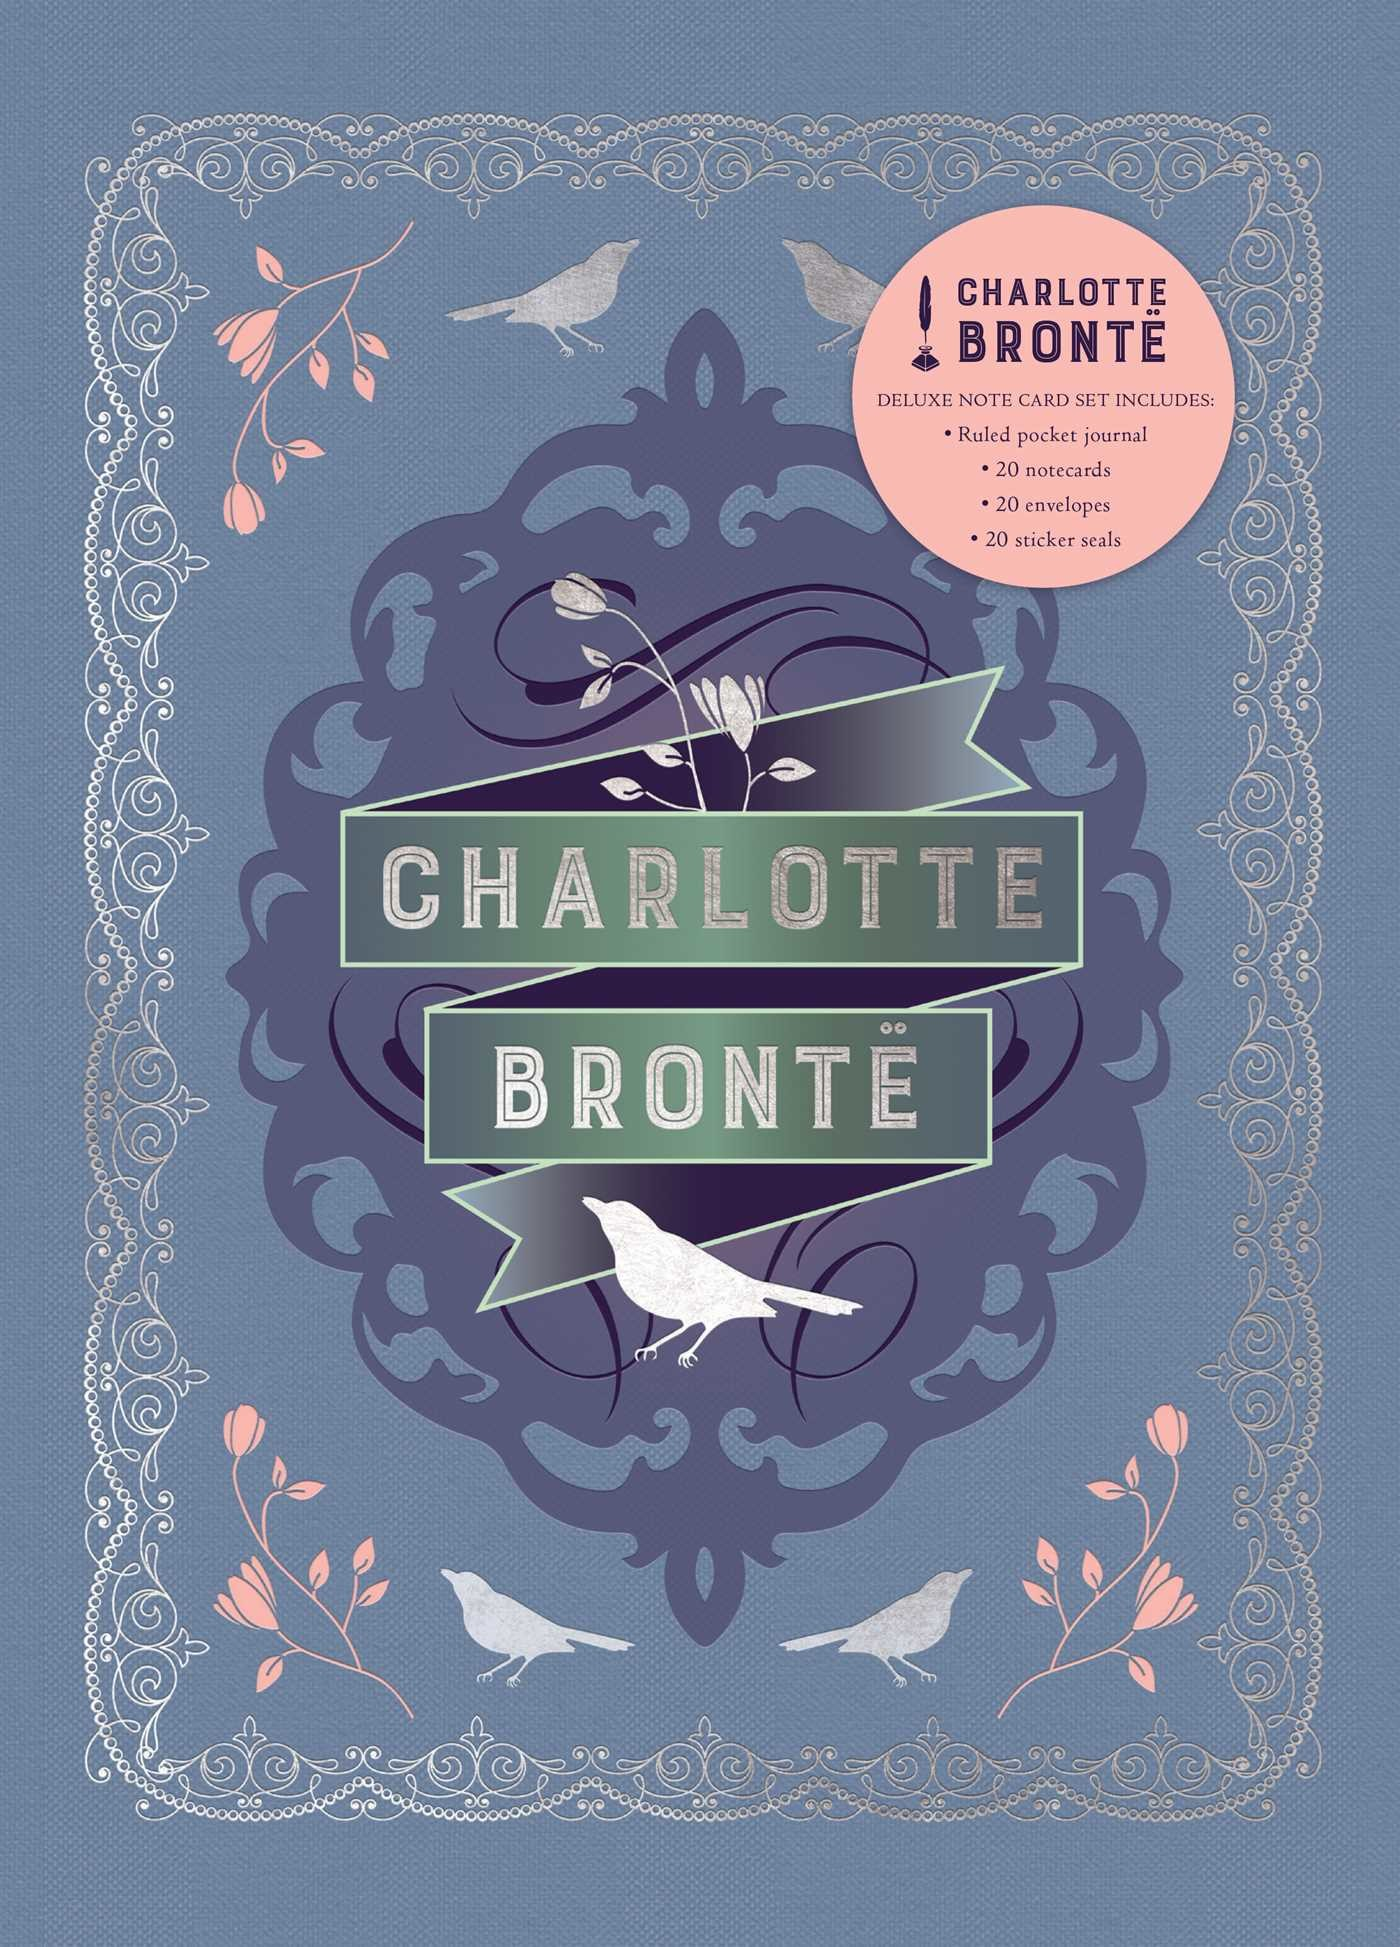 Charlotte bronte deluxe note card set with keepsake book box 9781683833109.in01